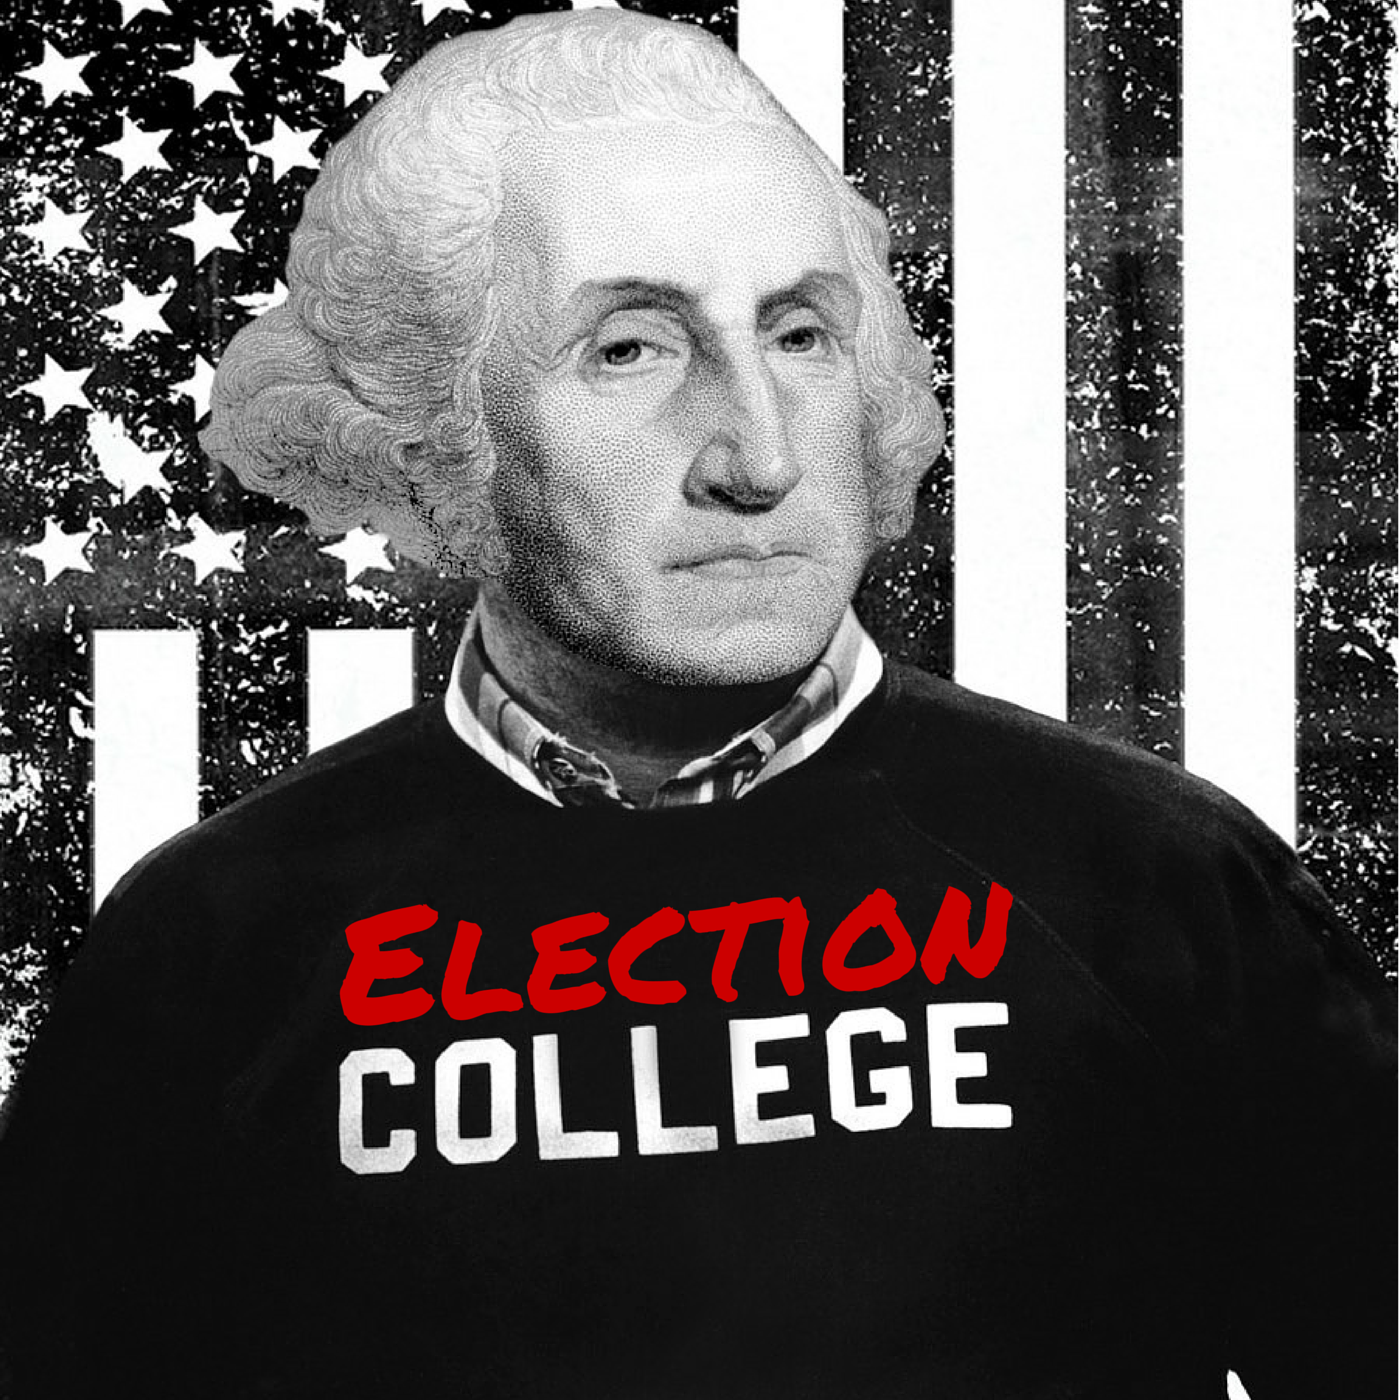 Thomas Jefferson: Part 1 | Episode #114 | Election College: United States Presidential Election History